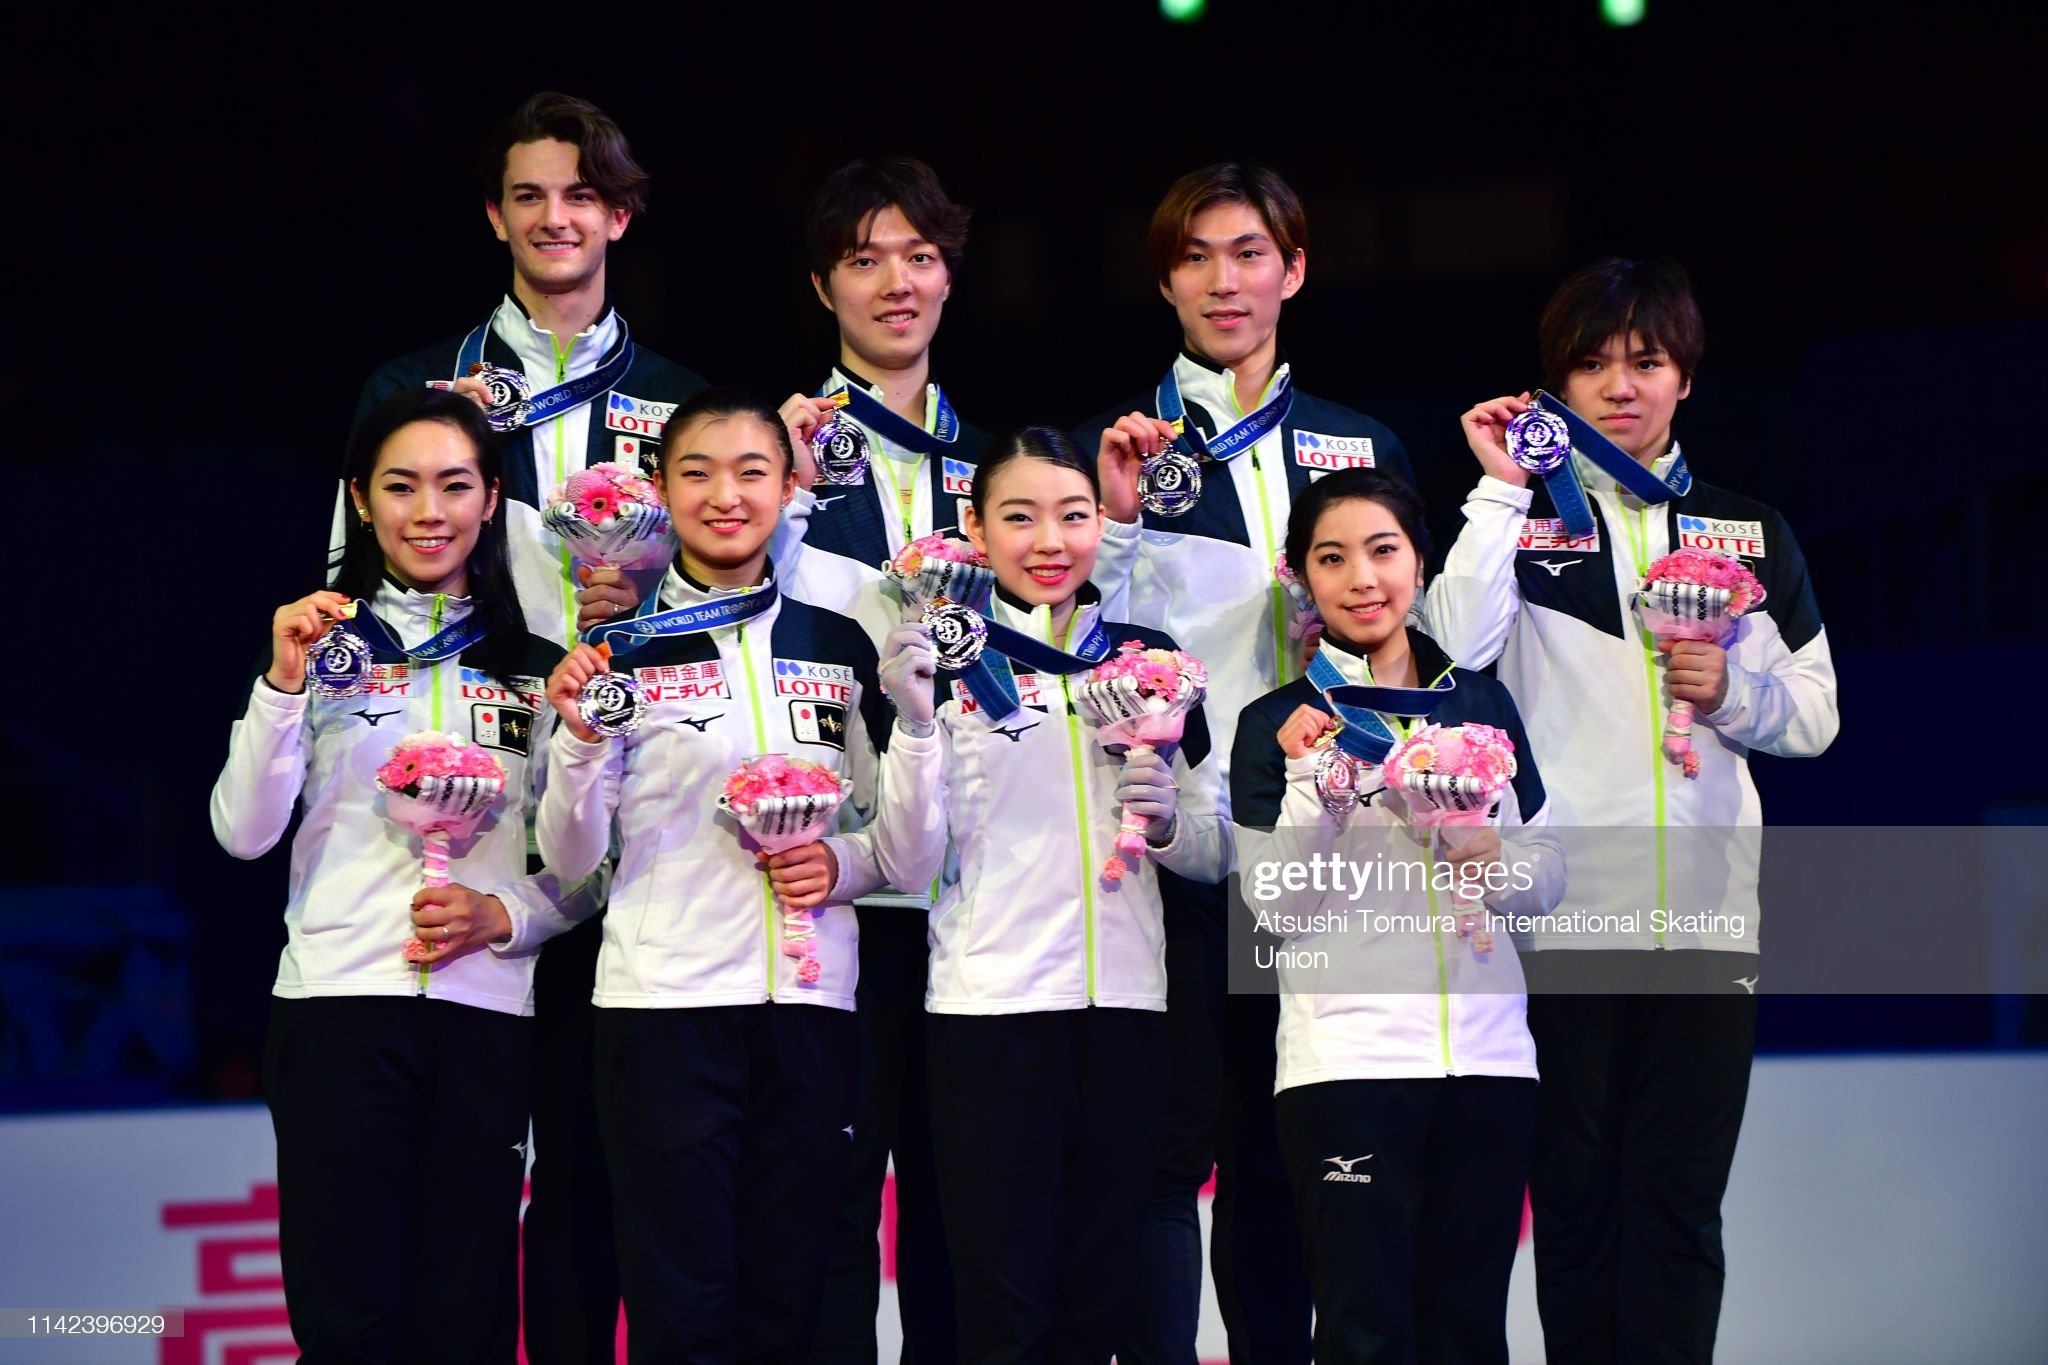 https://media.gettyimages.com/photos/silver-medalists-team-japan-pose-for-photographs-during-the-victory-picture-id1142396929?s=2048x2048